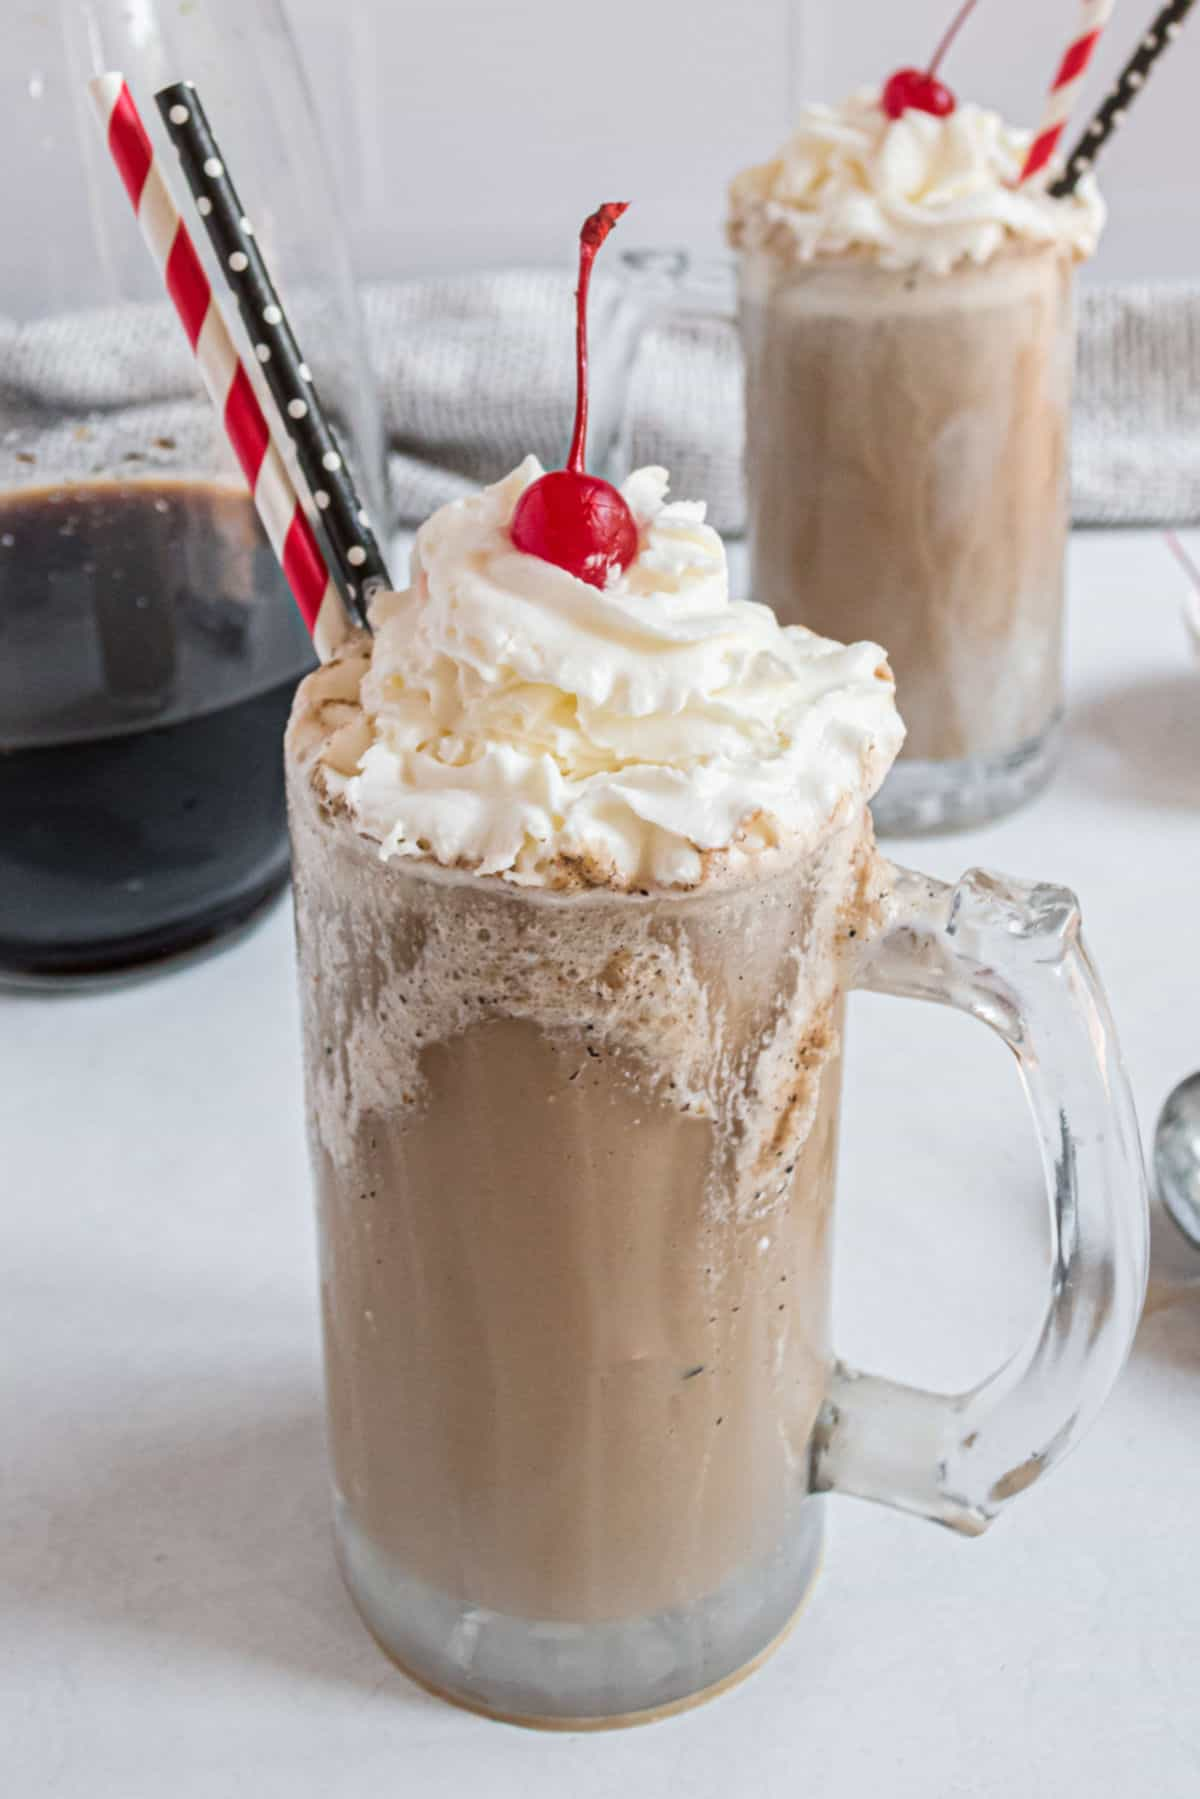 Homemade root beer with vanilla ice cream topped with whipped cream and cherry.